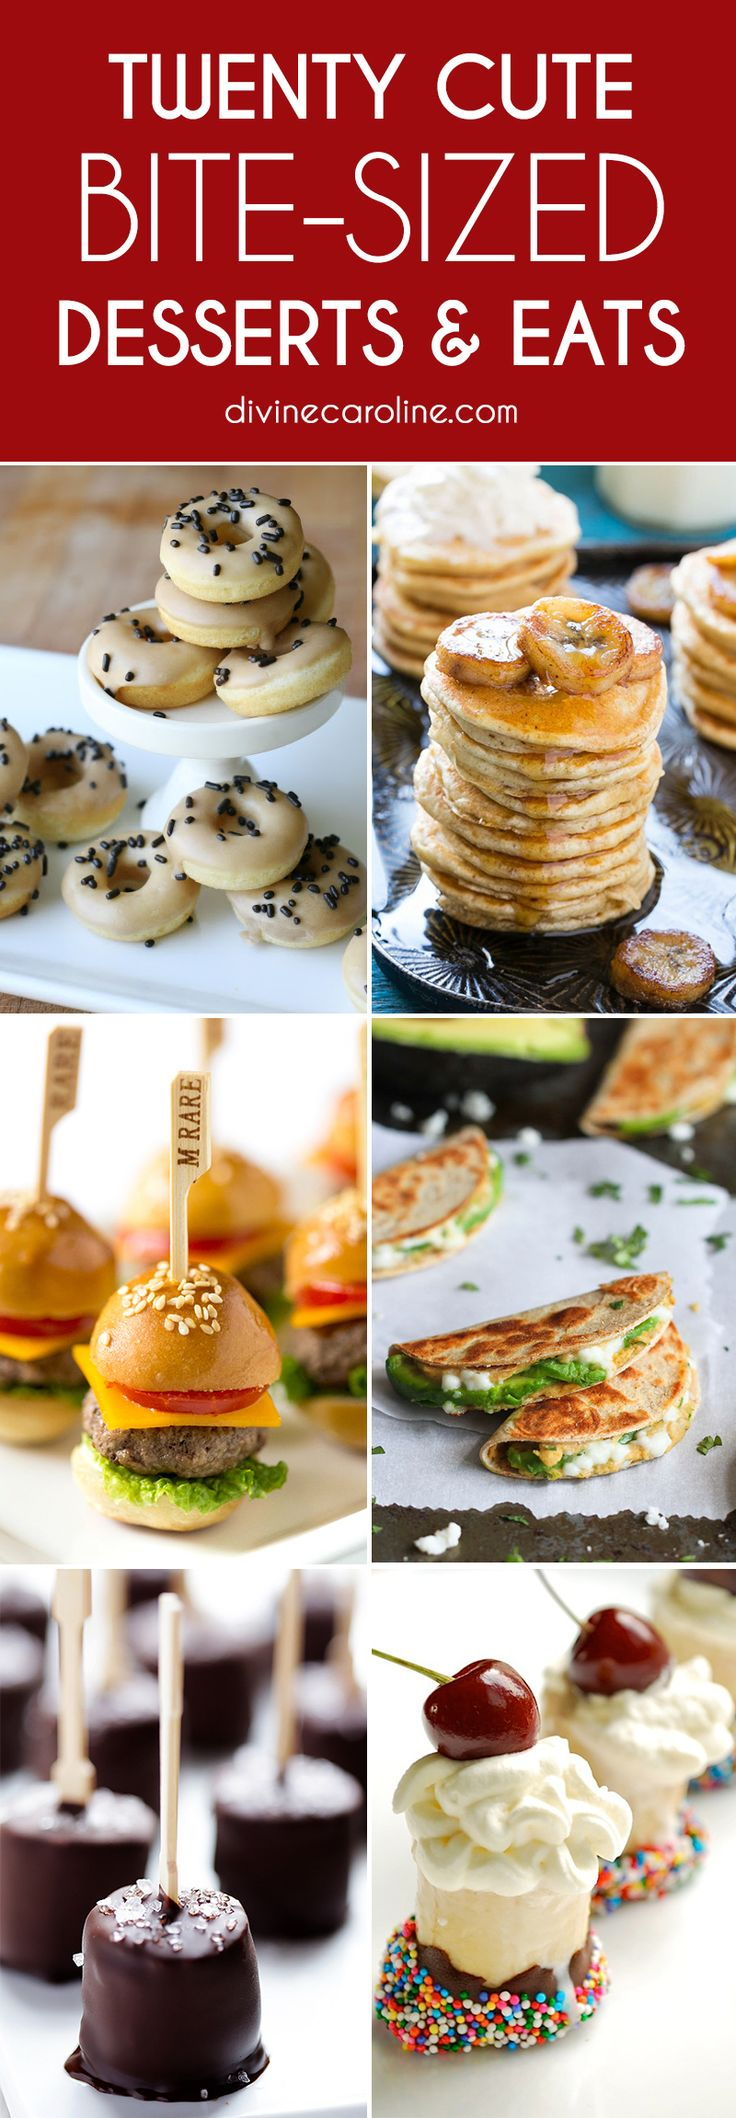 Bite-sized foods are great for parties, quick lunches, and anytime snacks. These 20 bite-sized desserts and eats will hit the spot and get your taste buds rolling. Ditch the silverware for finger foods, and enjoy!